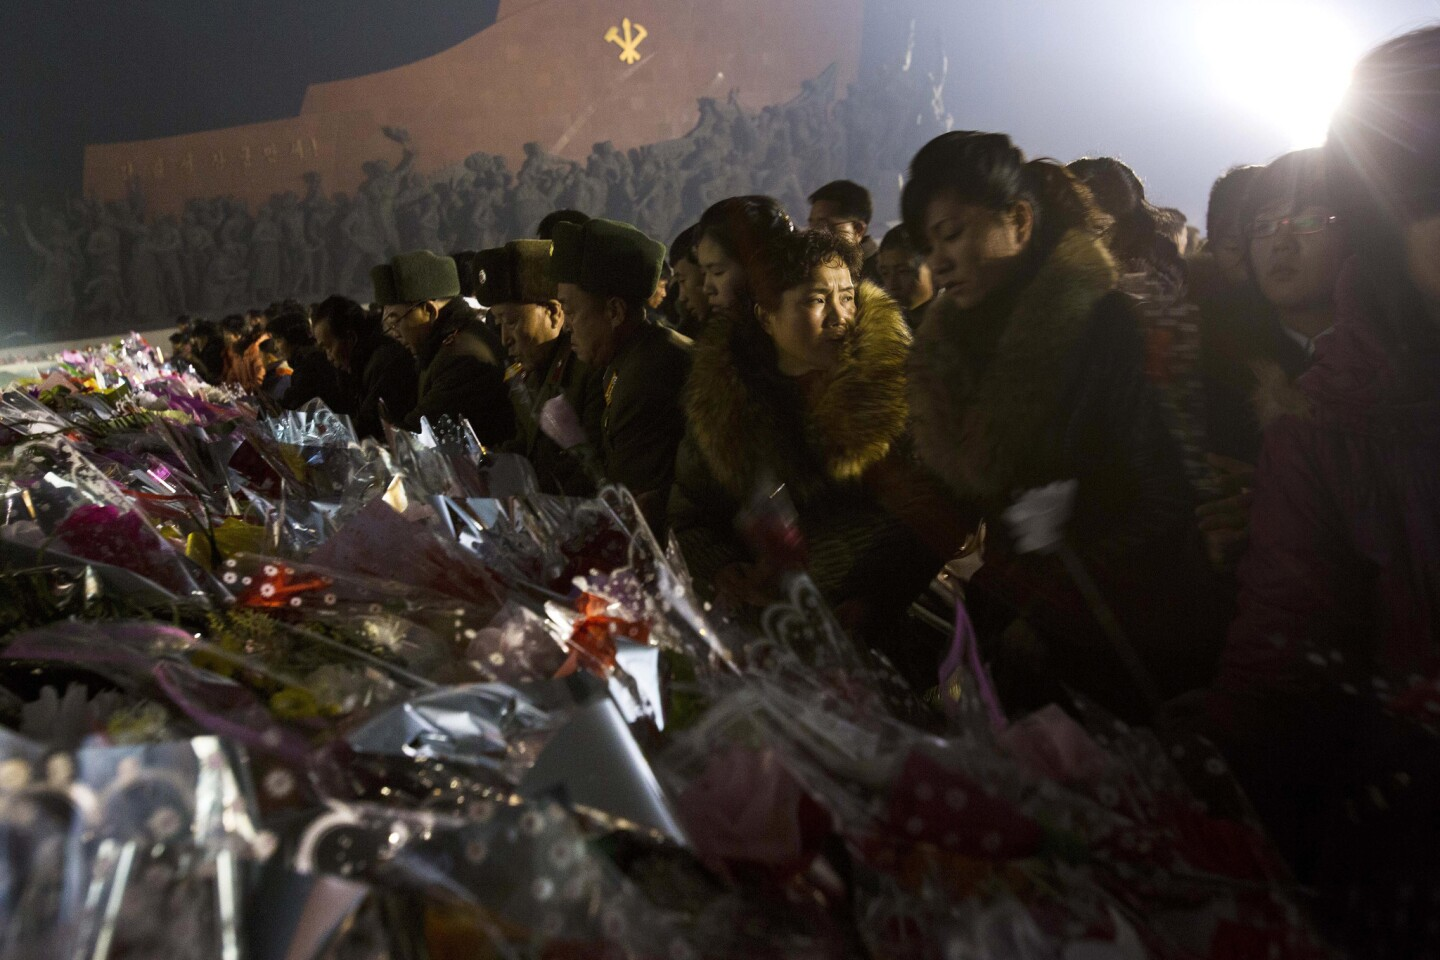 North Koreans lay flowers at the base of statues of the nation's founder, Kim Il Sung, and late leader Kim Jong Il in Pyongyang in December 2013 to commemorate the second anniversary of Kim Jong Il's death.